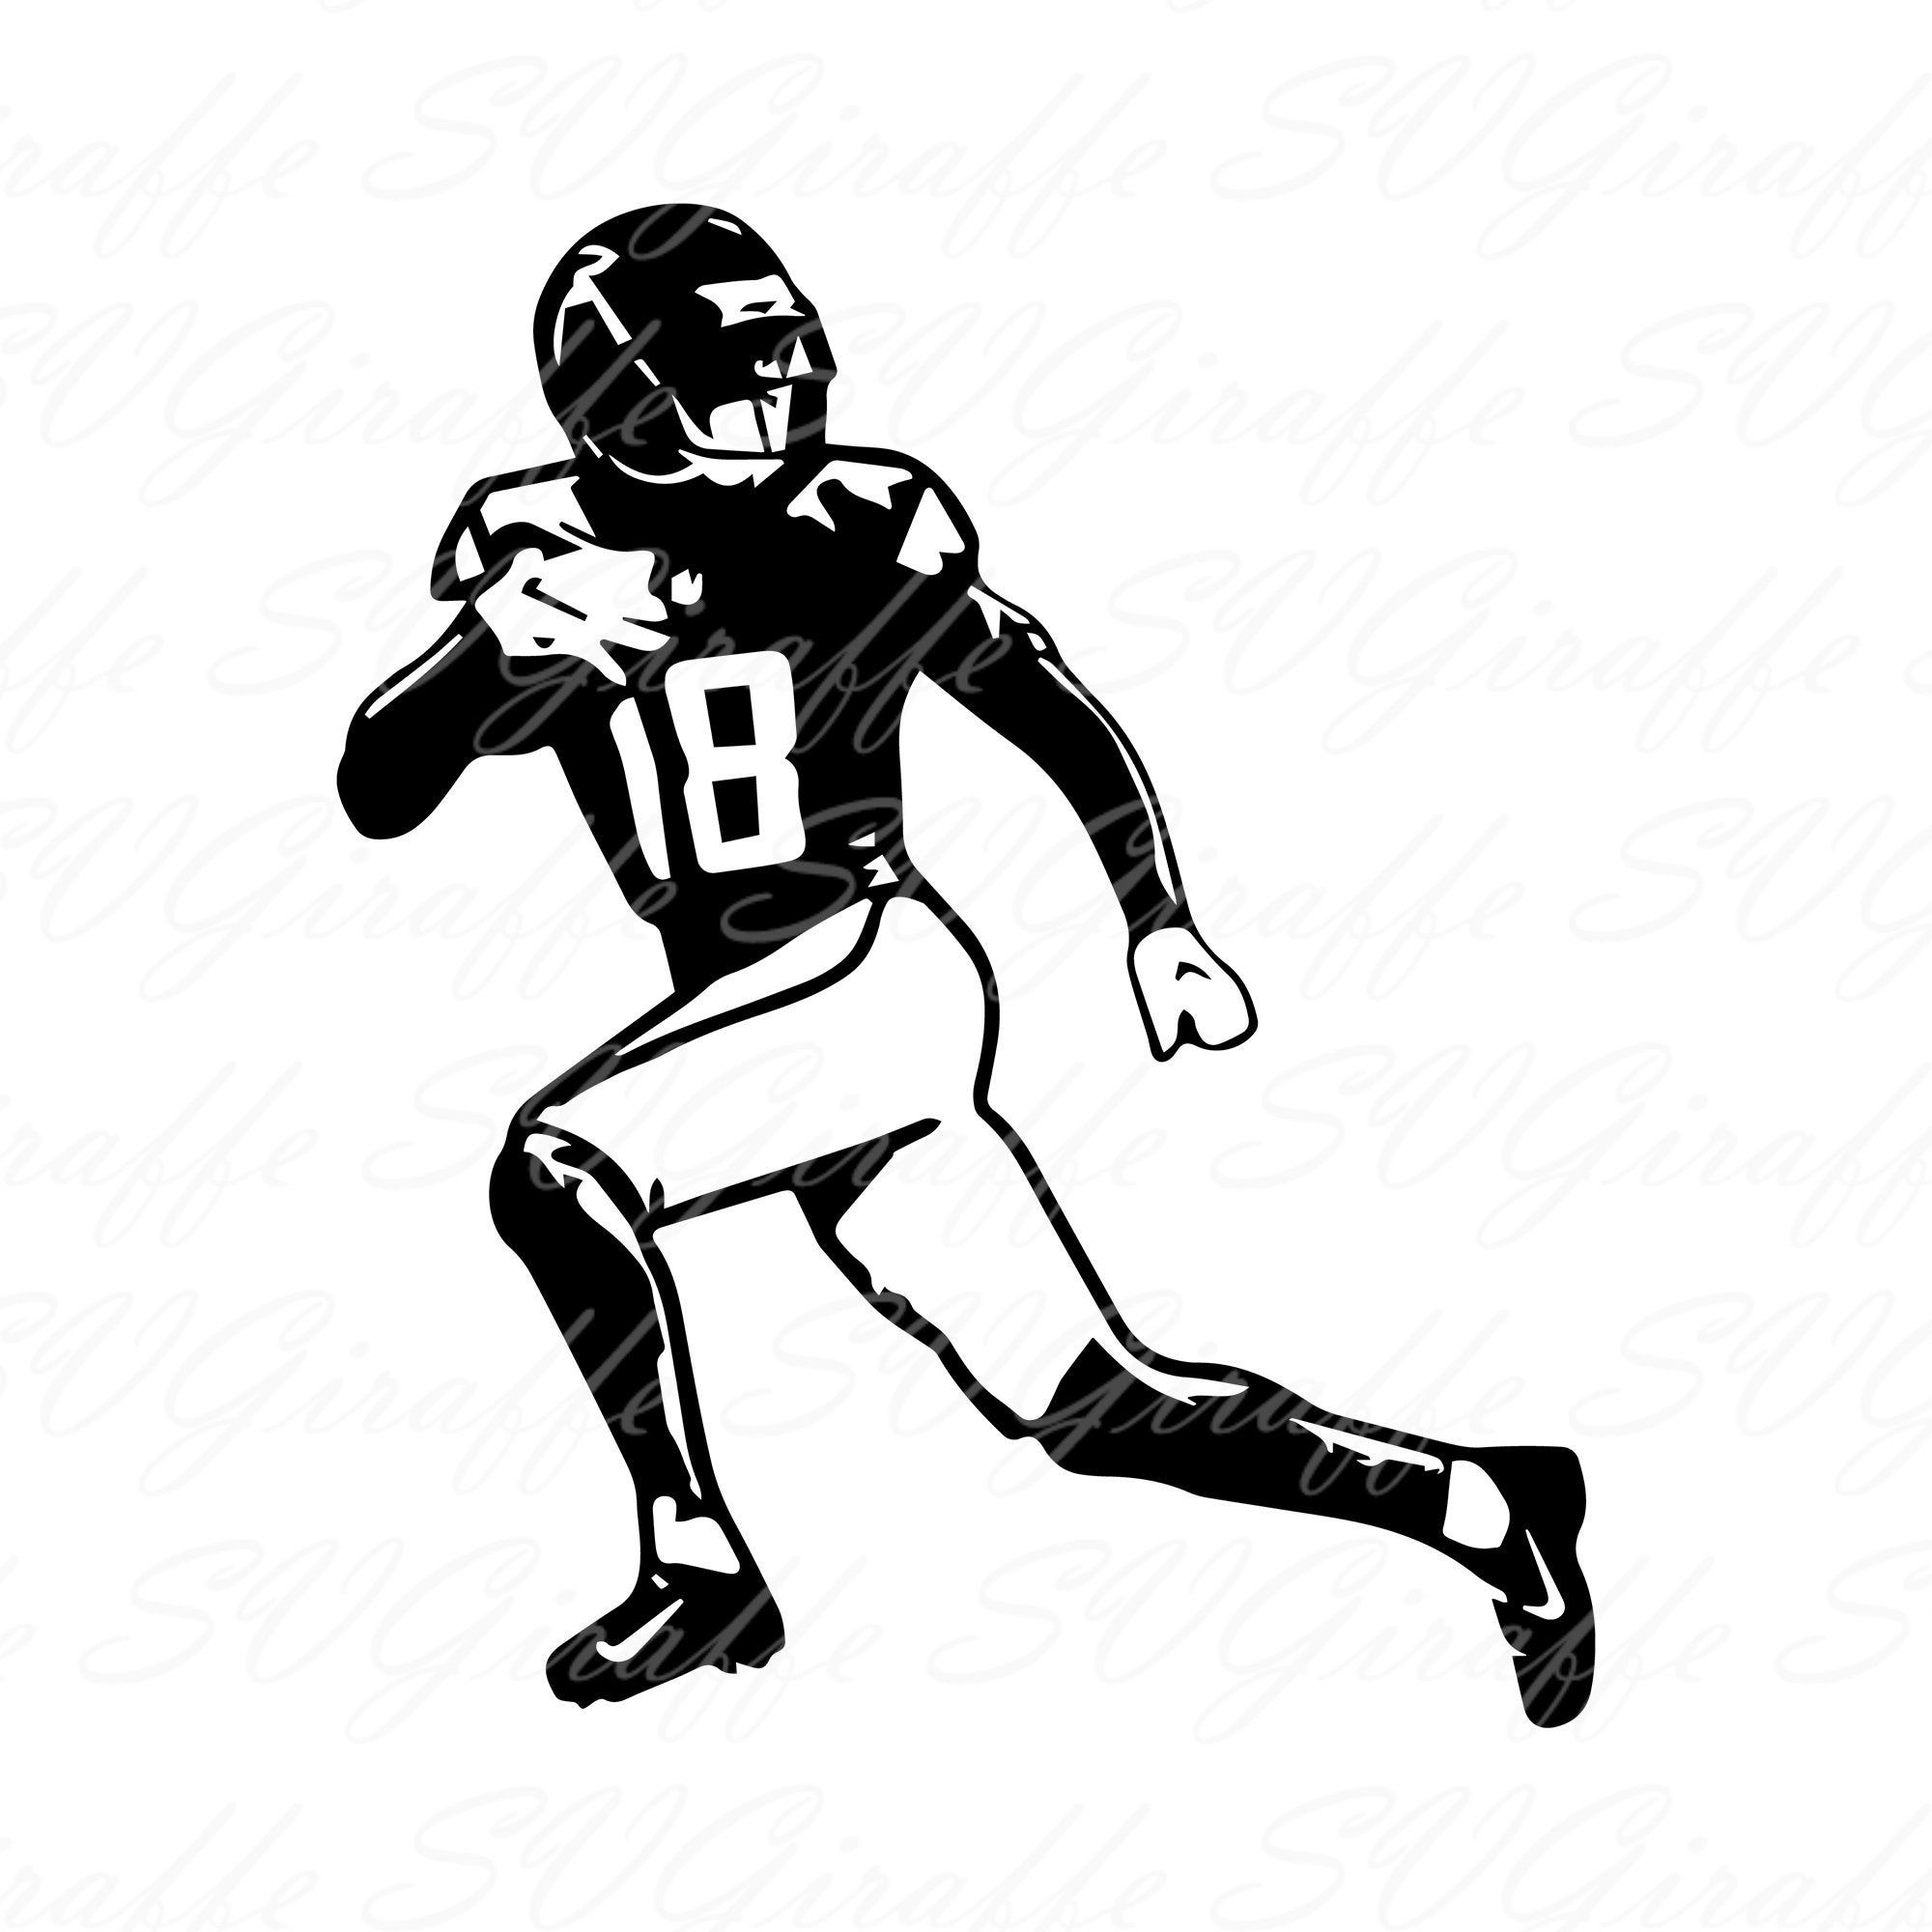 Calvin Ridley Svg Dxf Png Pdf Jpg Eps Files Atlanta Falcons Etsy In 2020 Atlanta Falcons Atlanta Atlanta Falcons Svg